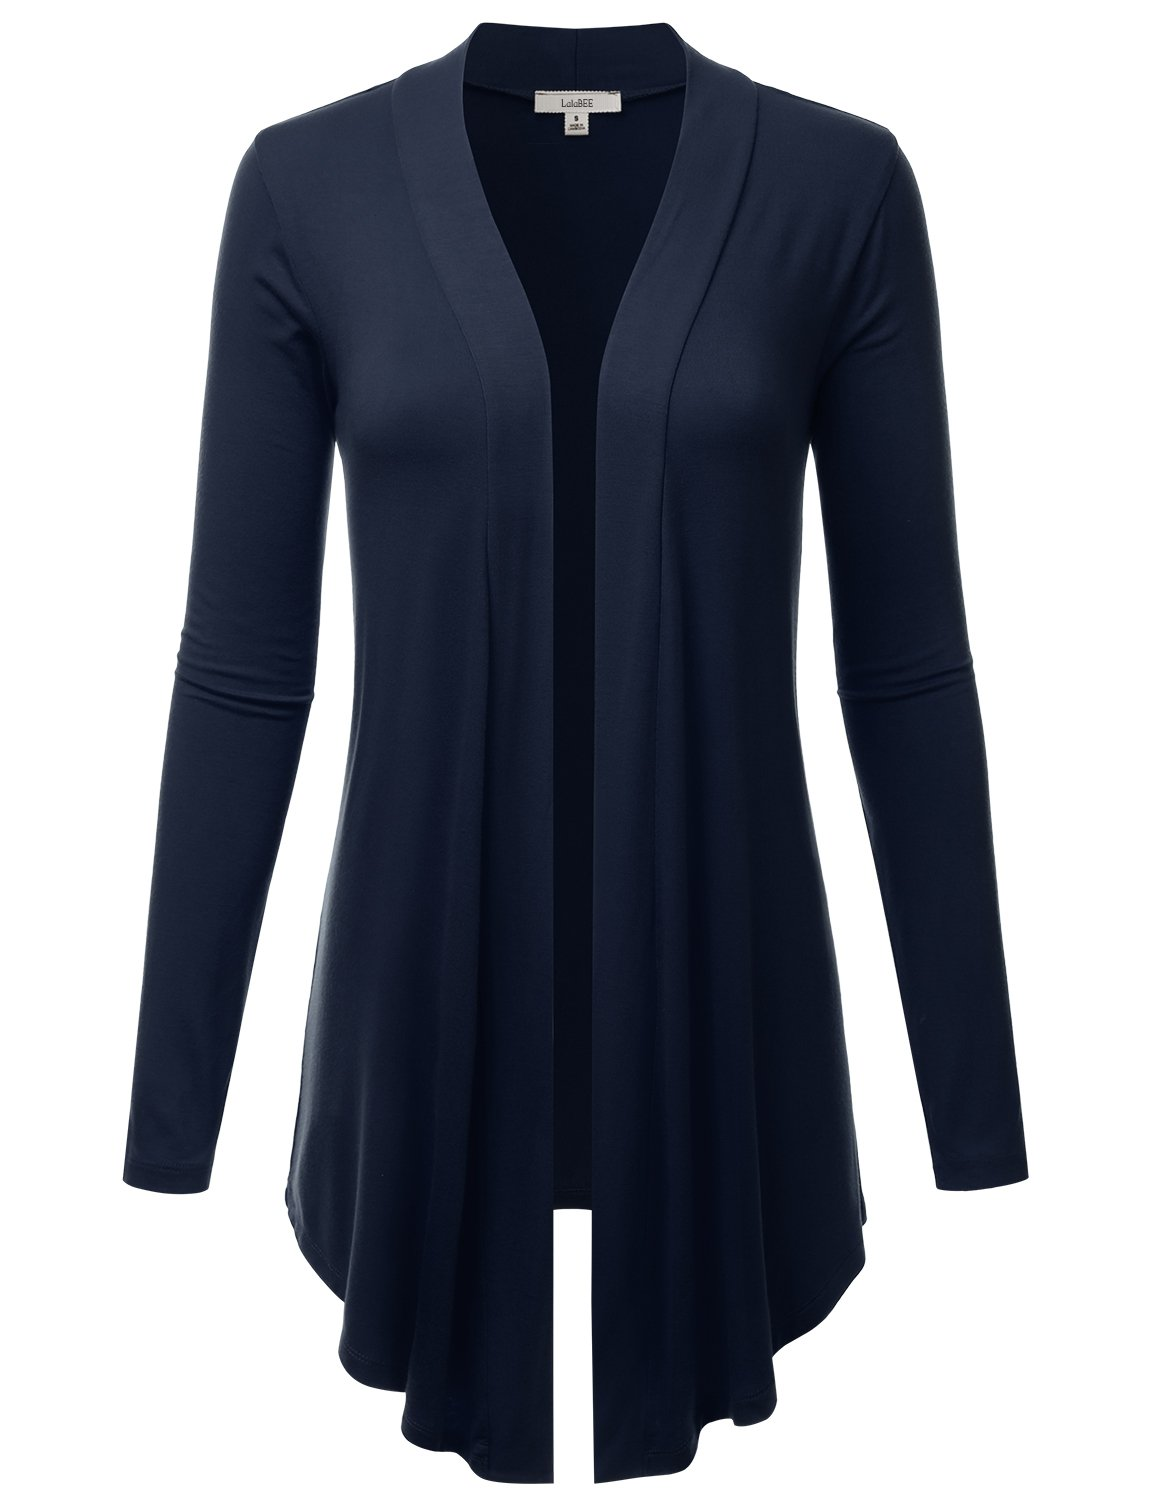 LALABEE Women's Draped Open-Front Long Sleeve Light Weight Cardigan-MIDNIGHTNAVY-S